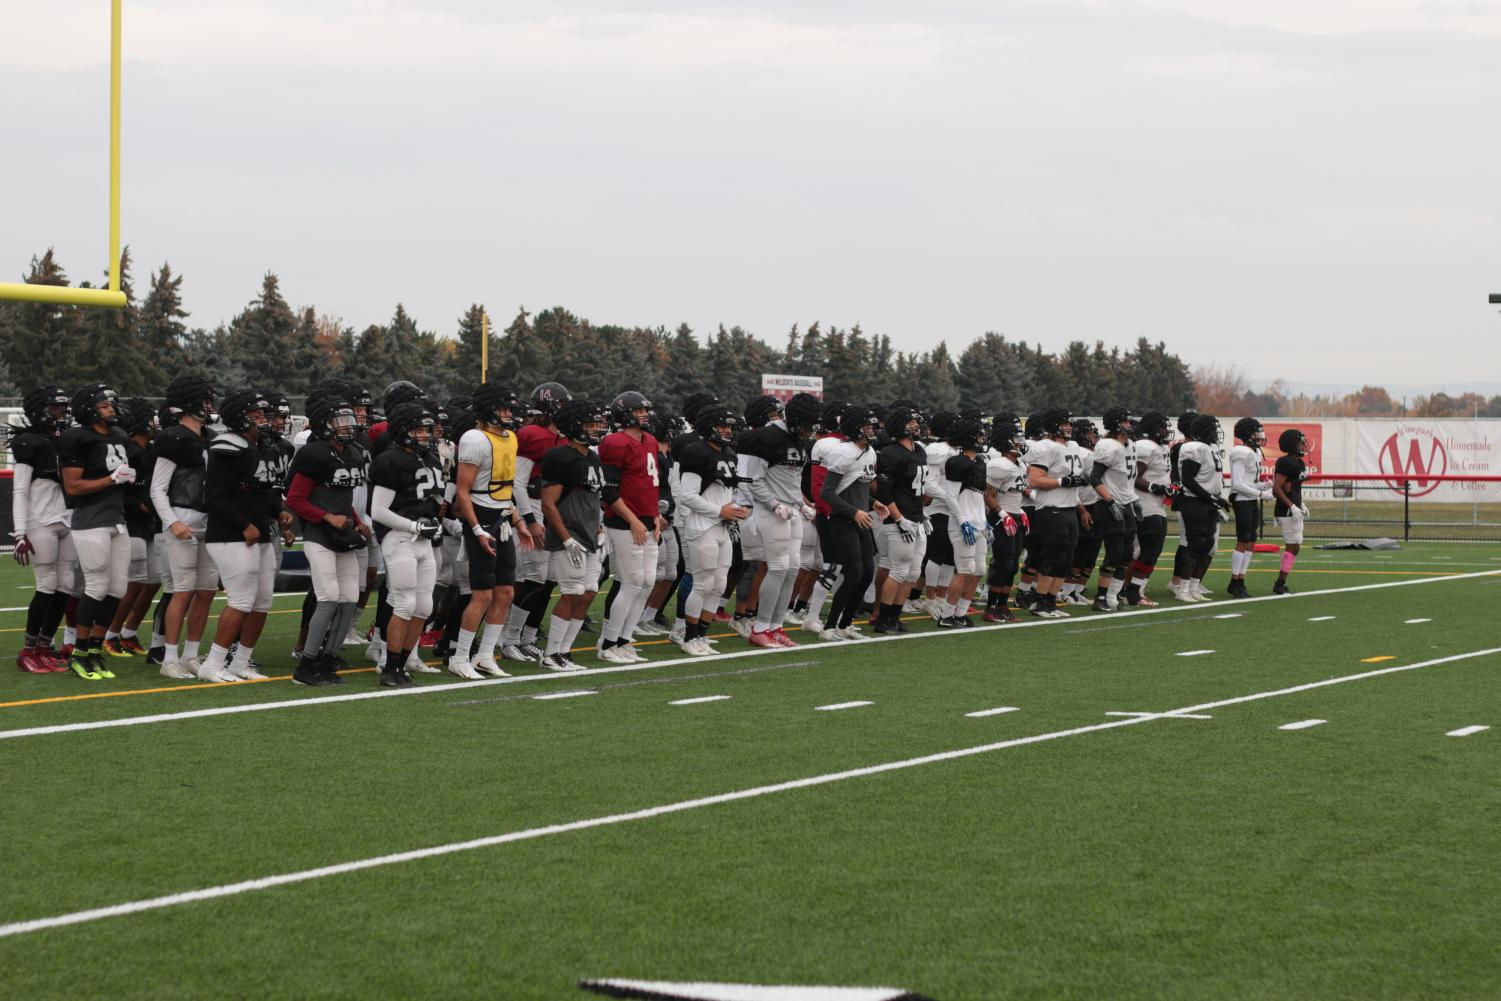 CWU spring football practices will begin April 5. Practices are open to the public and the spring game will take place on May 4, starting at 3 p.m.